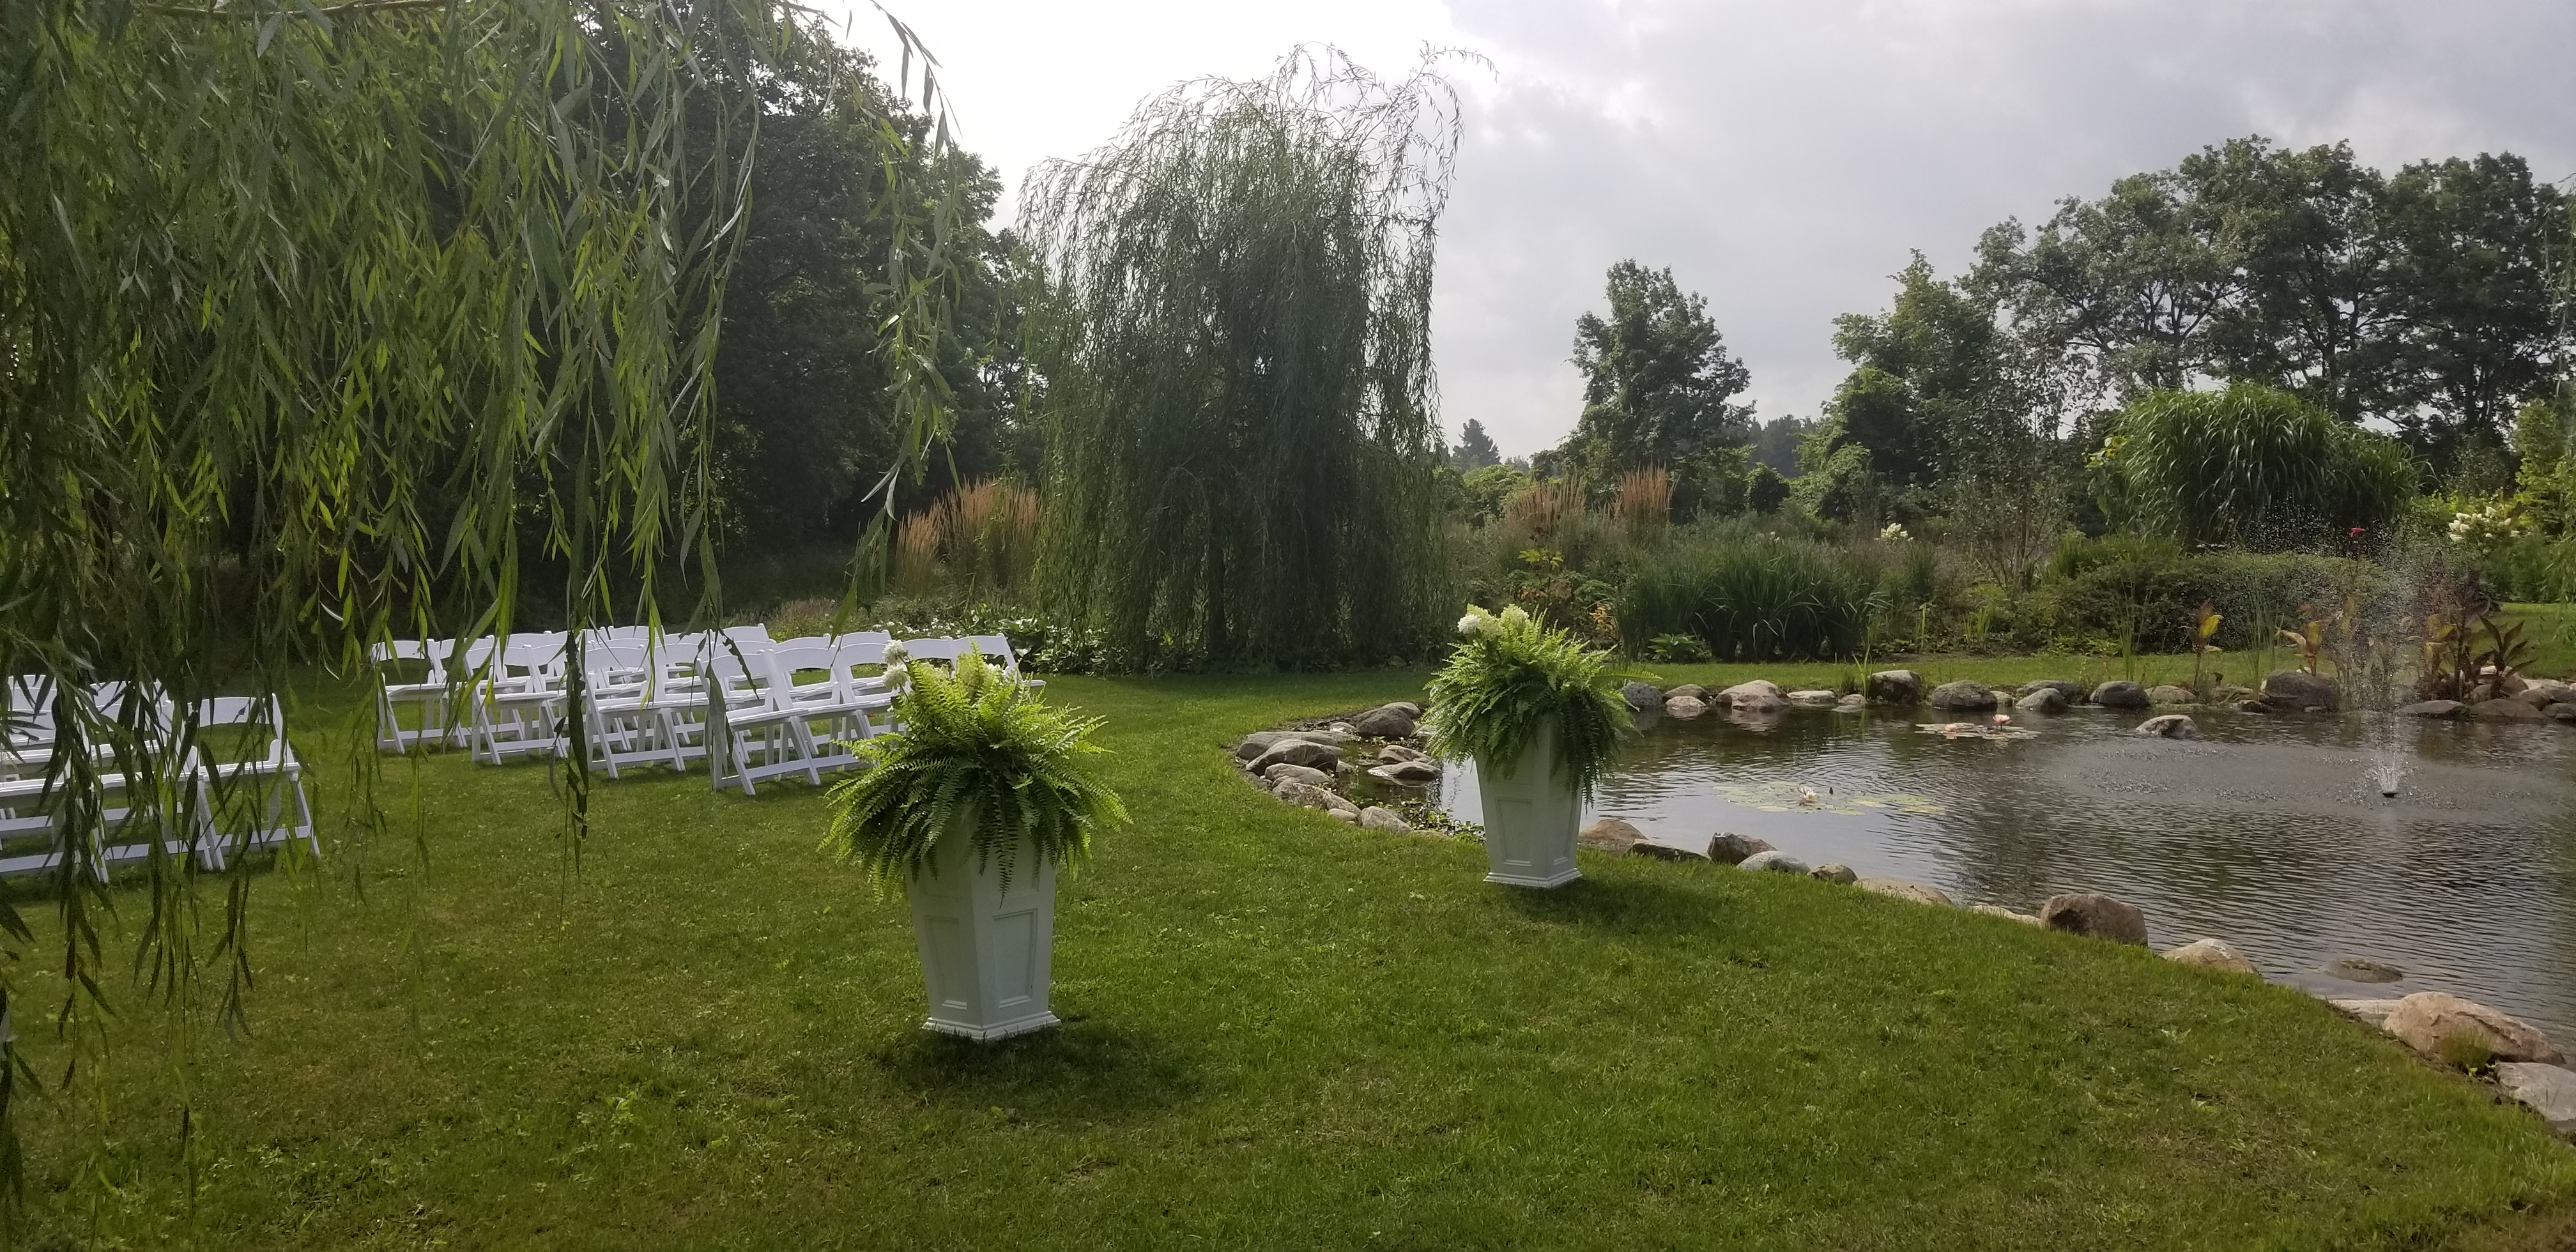 Willow Trees at Meadow View Gardens